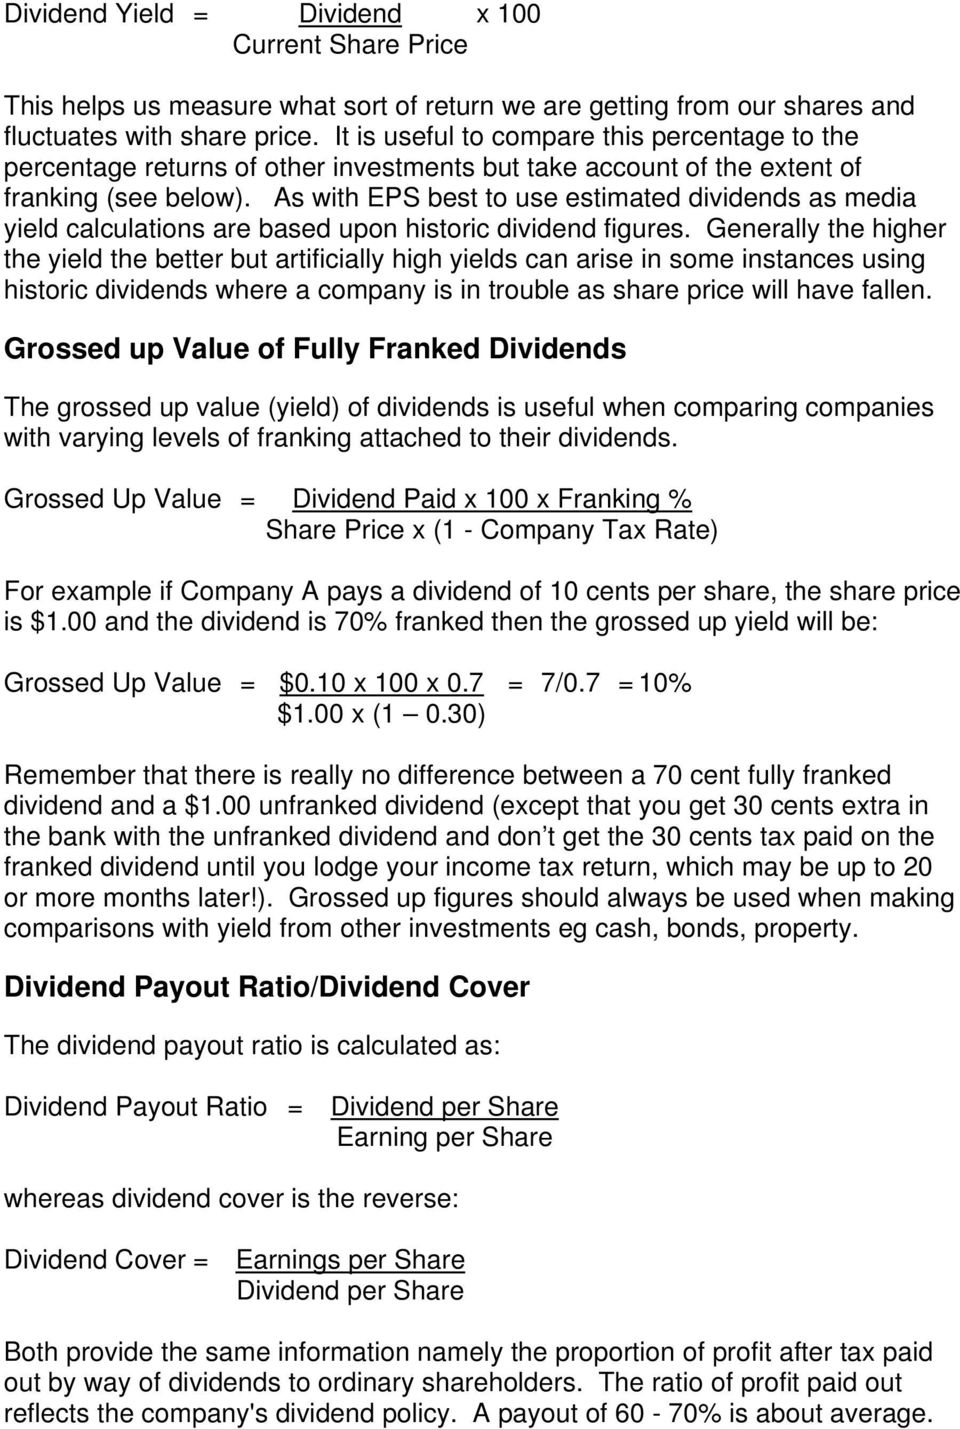 As with EPS best to use estimated dividends as media yield calculations are based upon historic dividend figures.